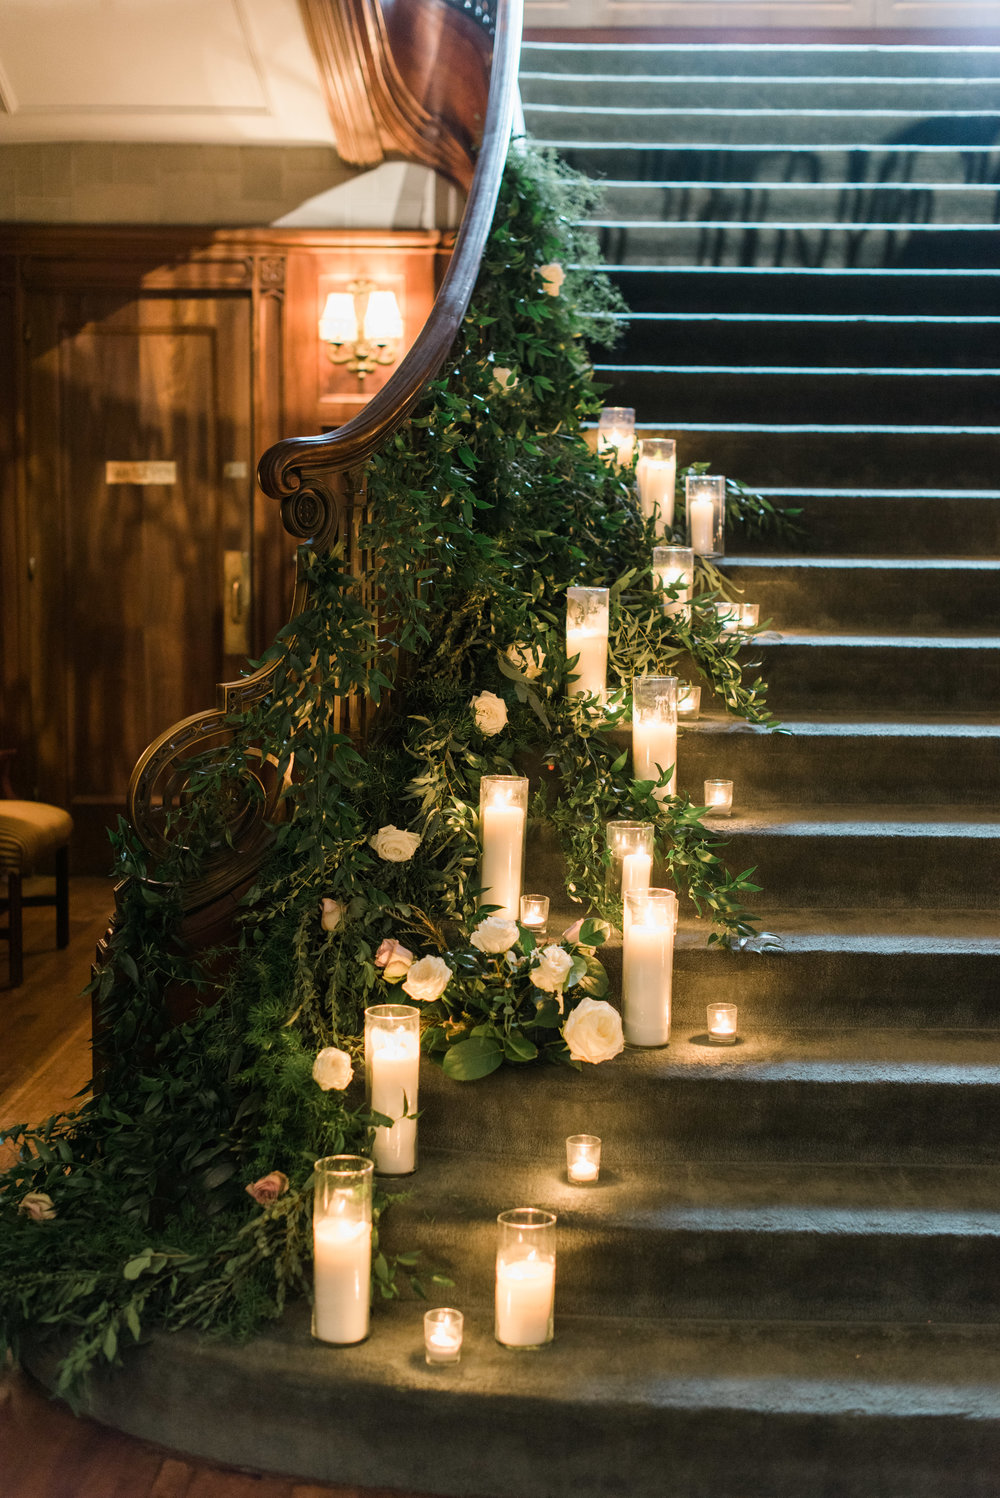 callanwolde wedding greenery staircase